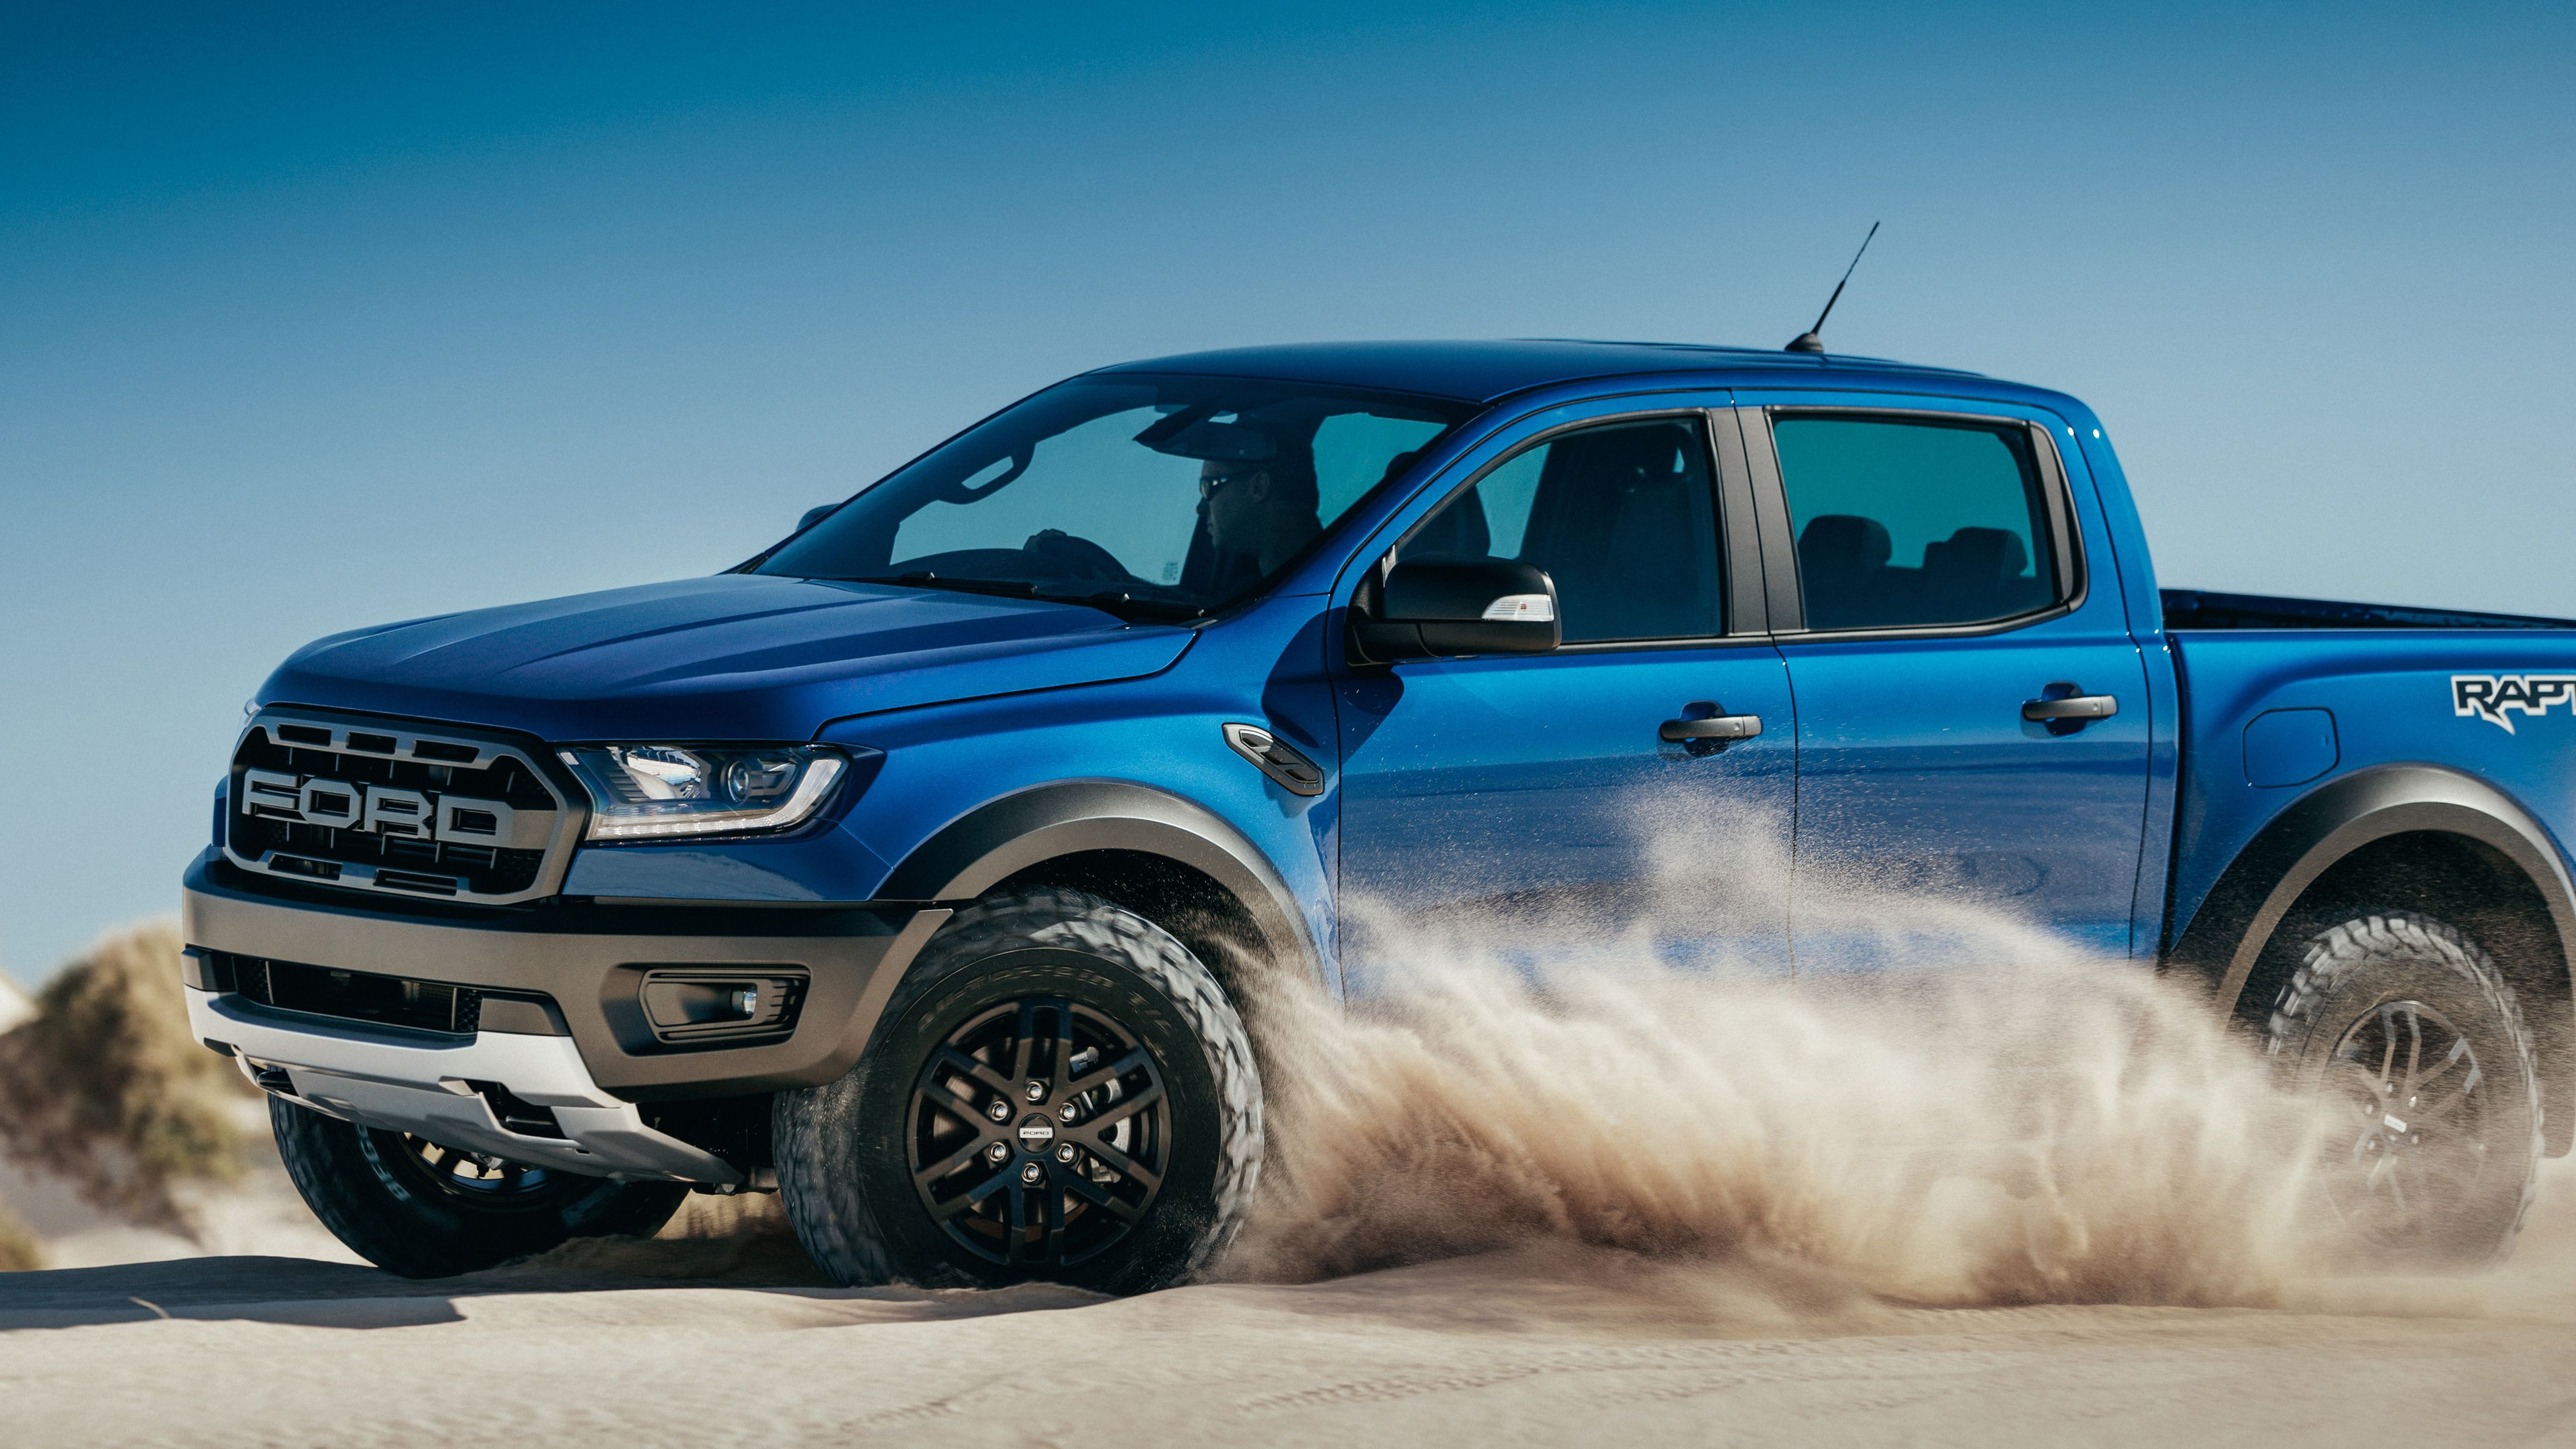 Ford Ranger Raptor 2019 Truck Wallpapers Hd Wallpapers Ford